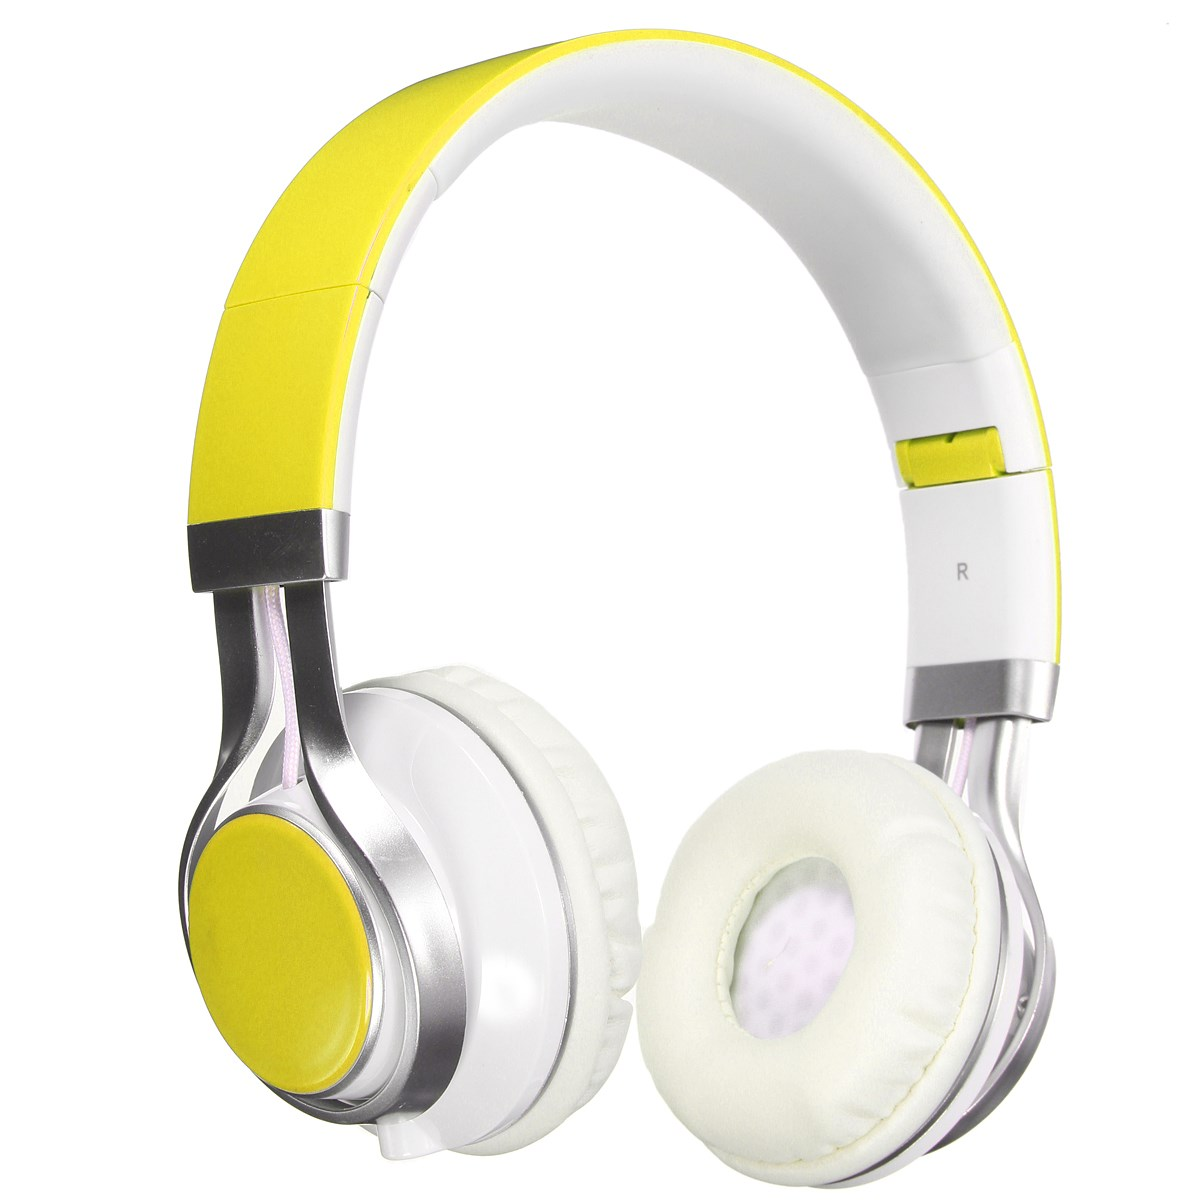 Fashion Foldable Headphones Stereo Surround 3.5mm Headband Earbuds Headset With Microphone Earphones For Samsung For HTC